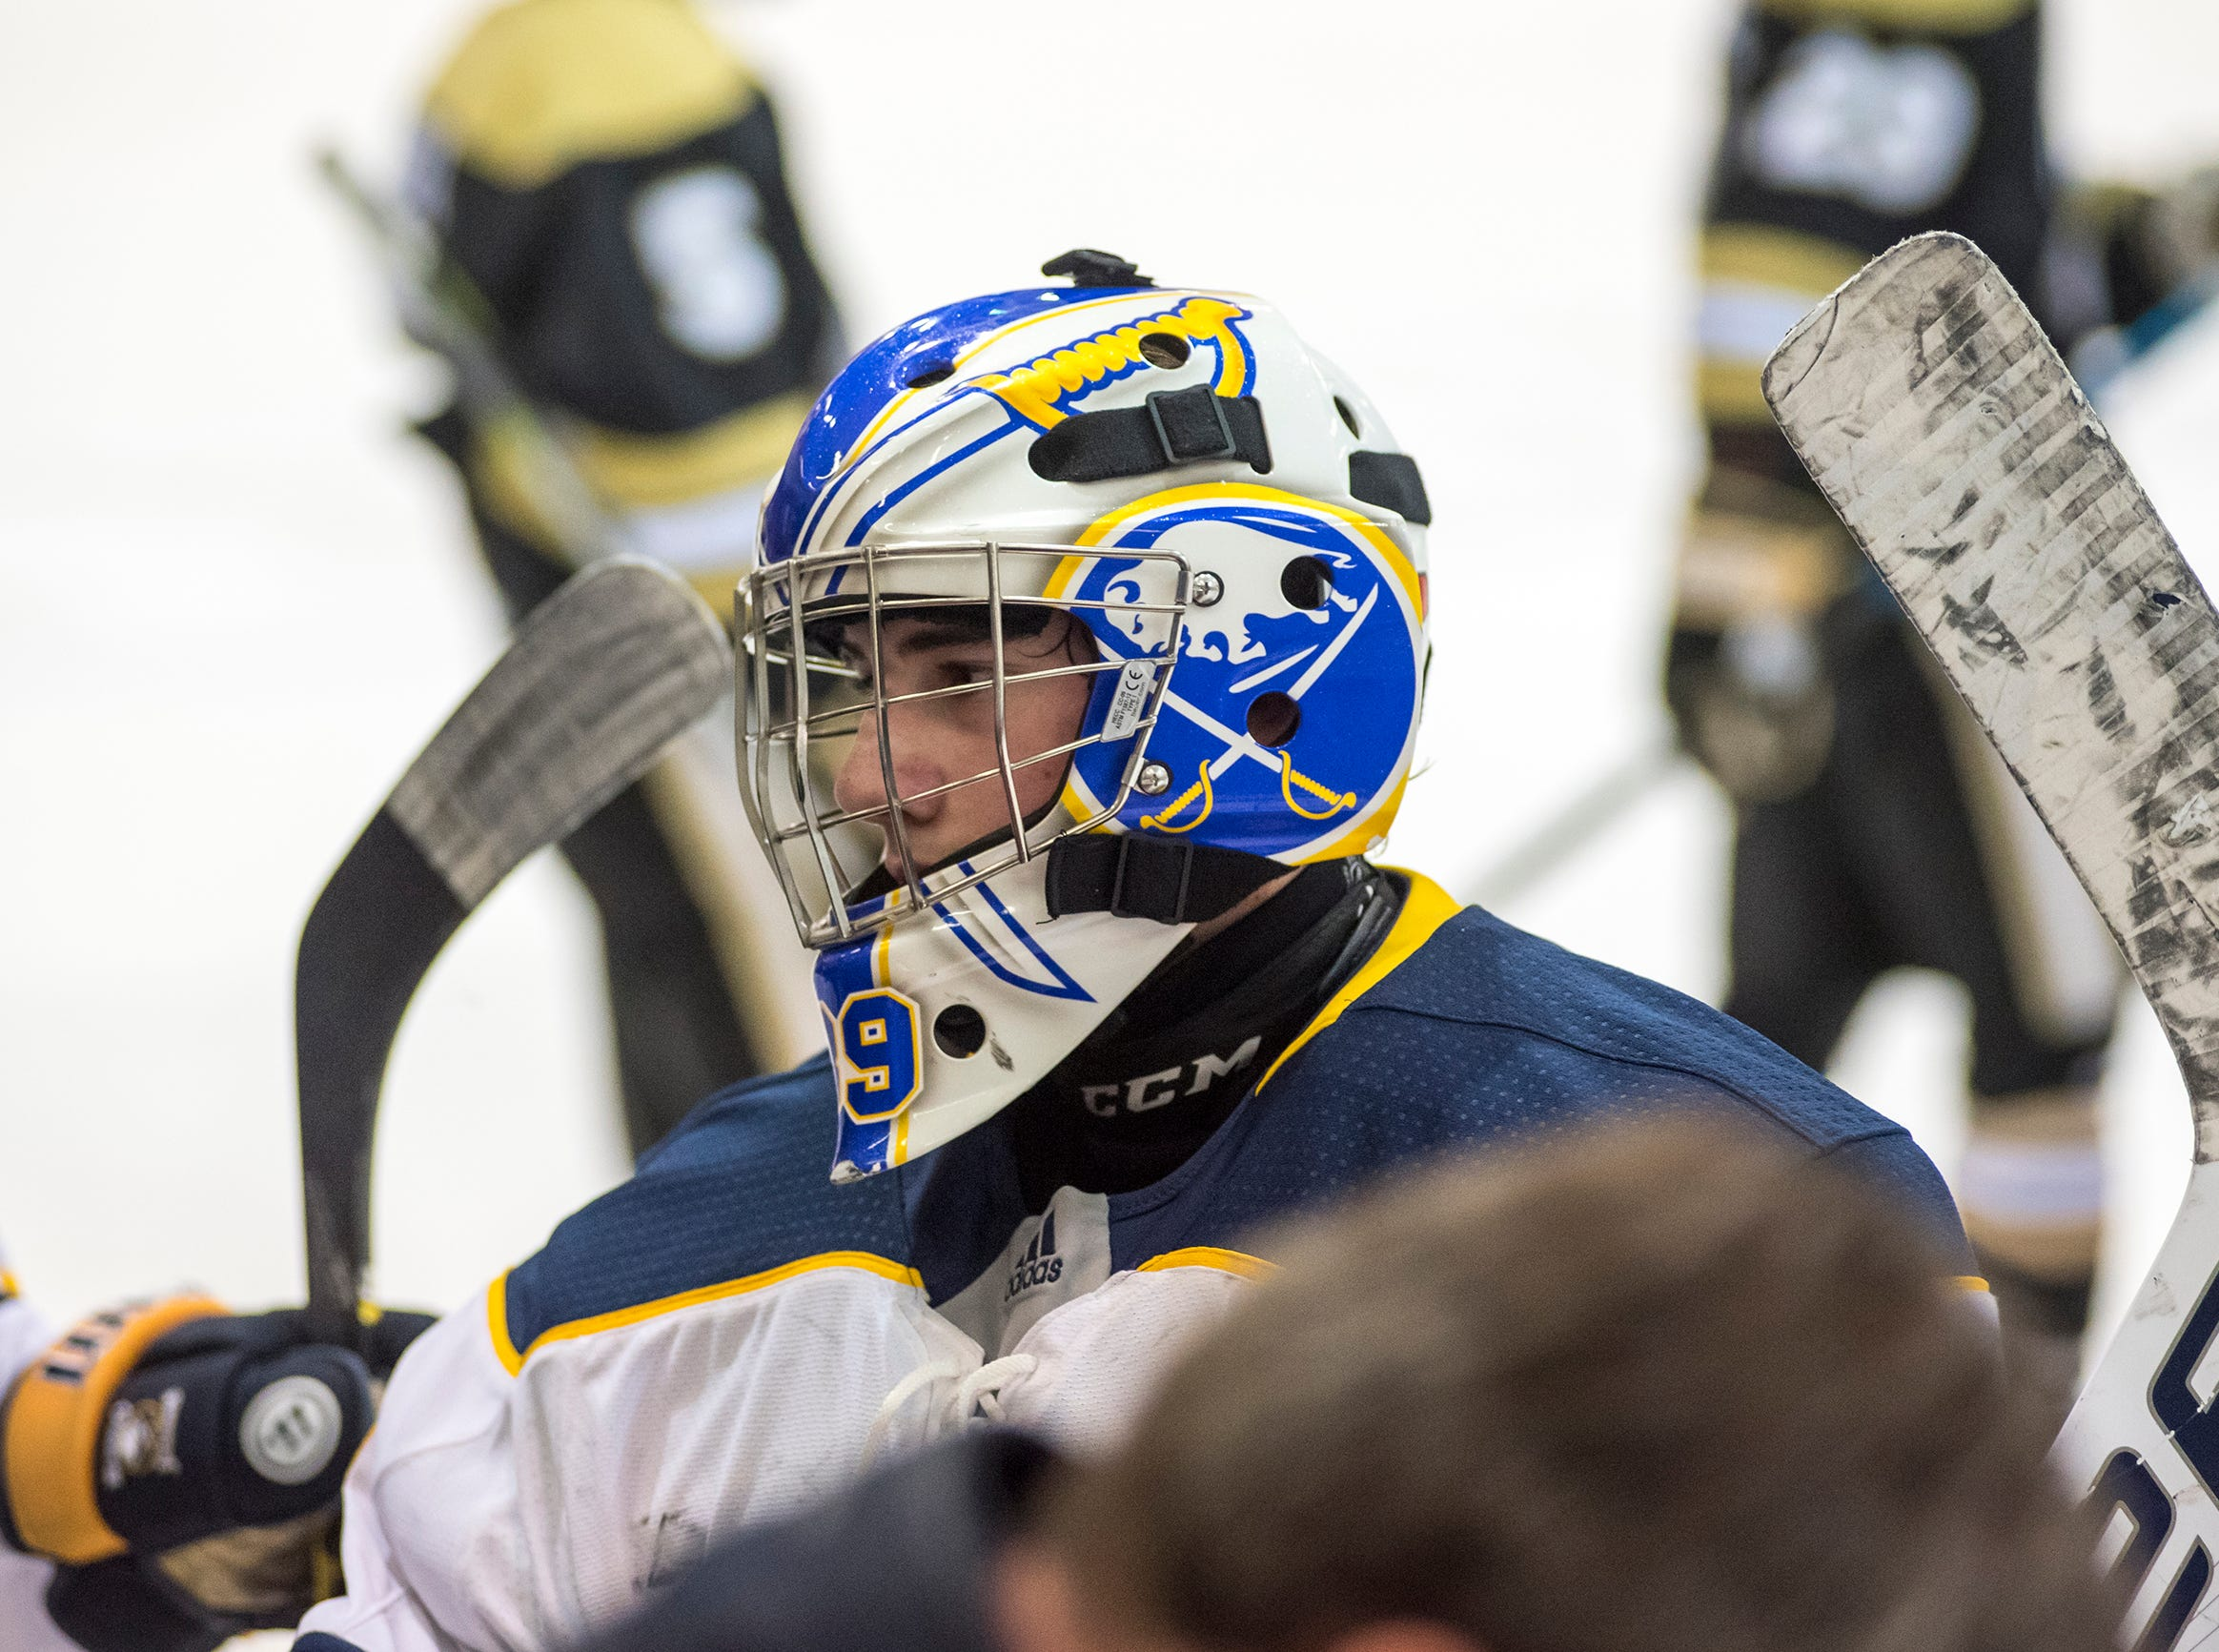 Buffalo Jr. Sabres goalie Joseph Lovullo stands in a huddle during the Silver Stick Finals BAAA Championship match against Detroit Honeybaked Sunday, Jan. 6, 2019 at McMorran Arena.